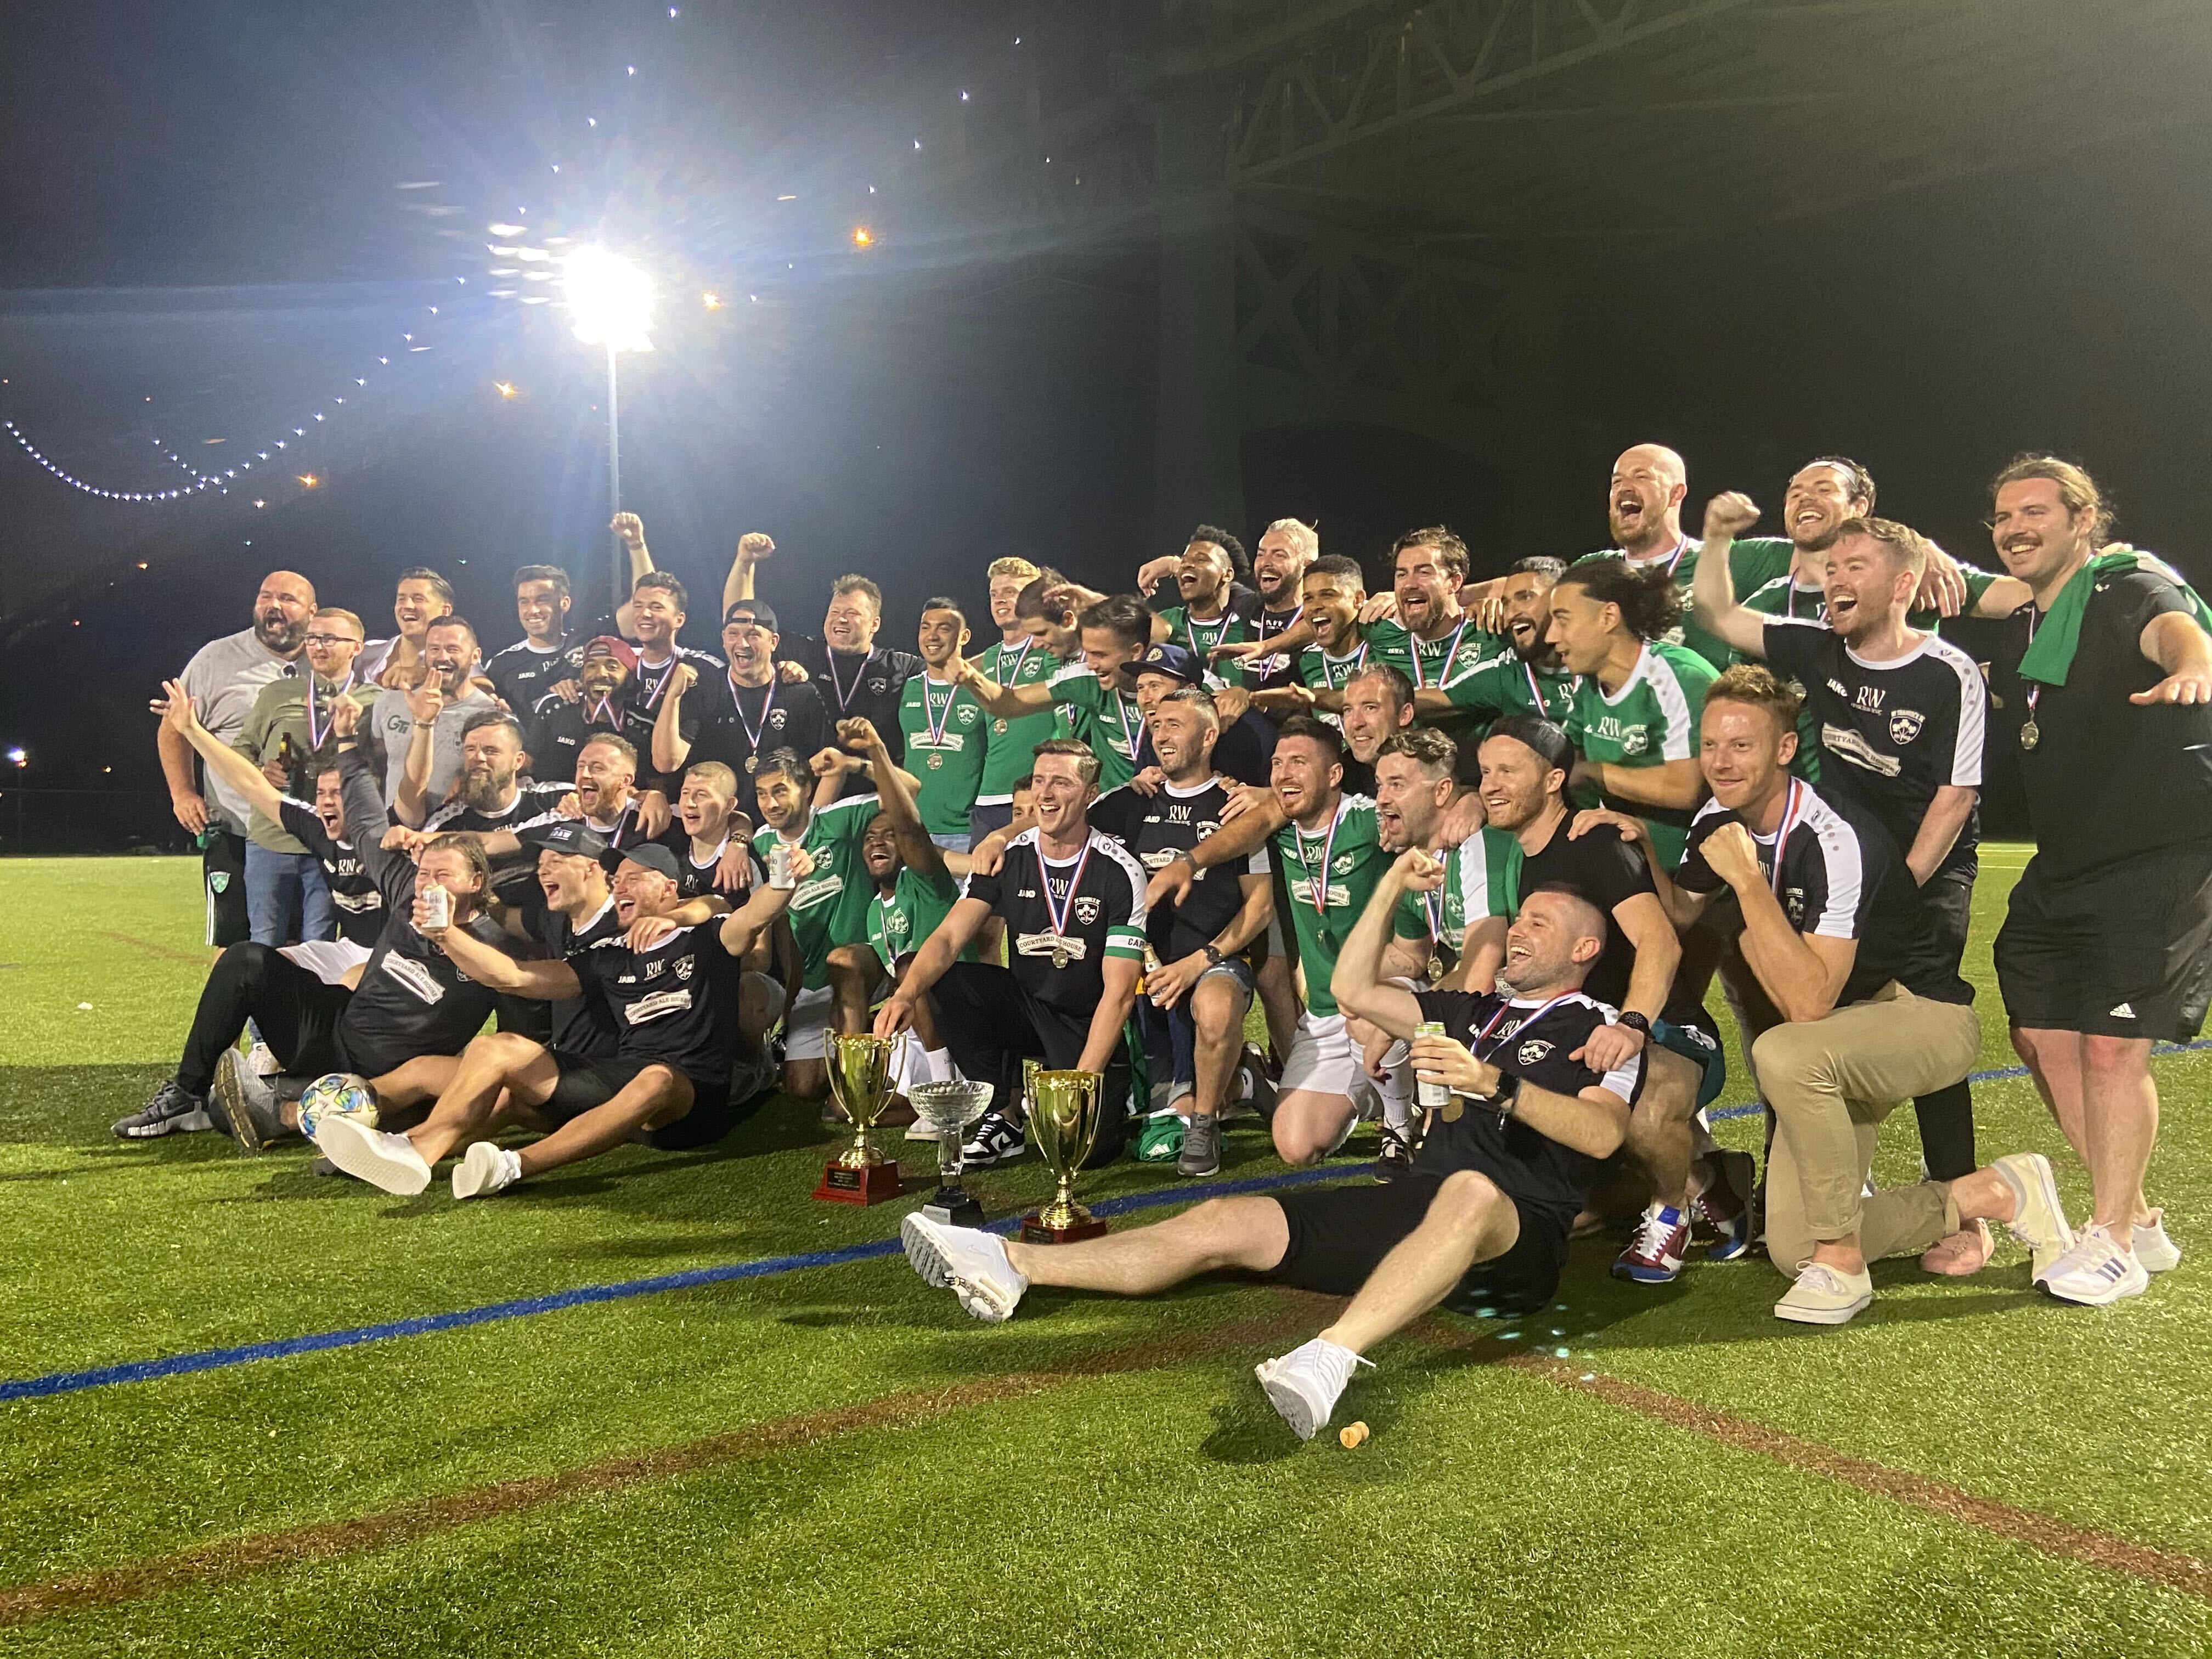 New York Shamrock SC Win Division 1 Title After 22 Weeks of Play